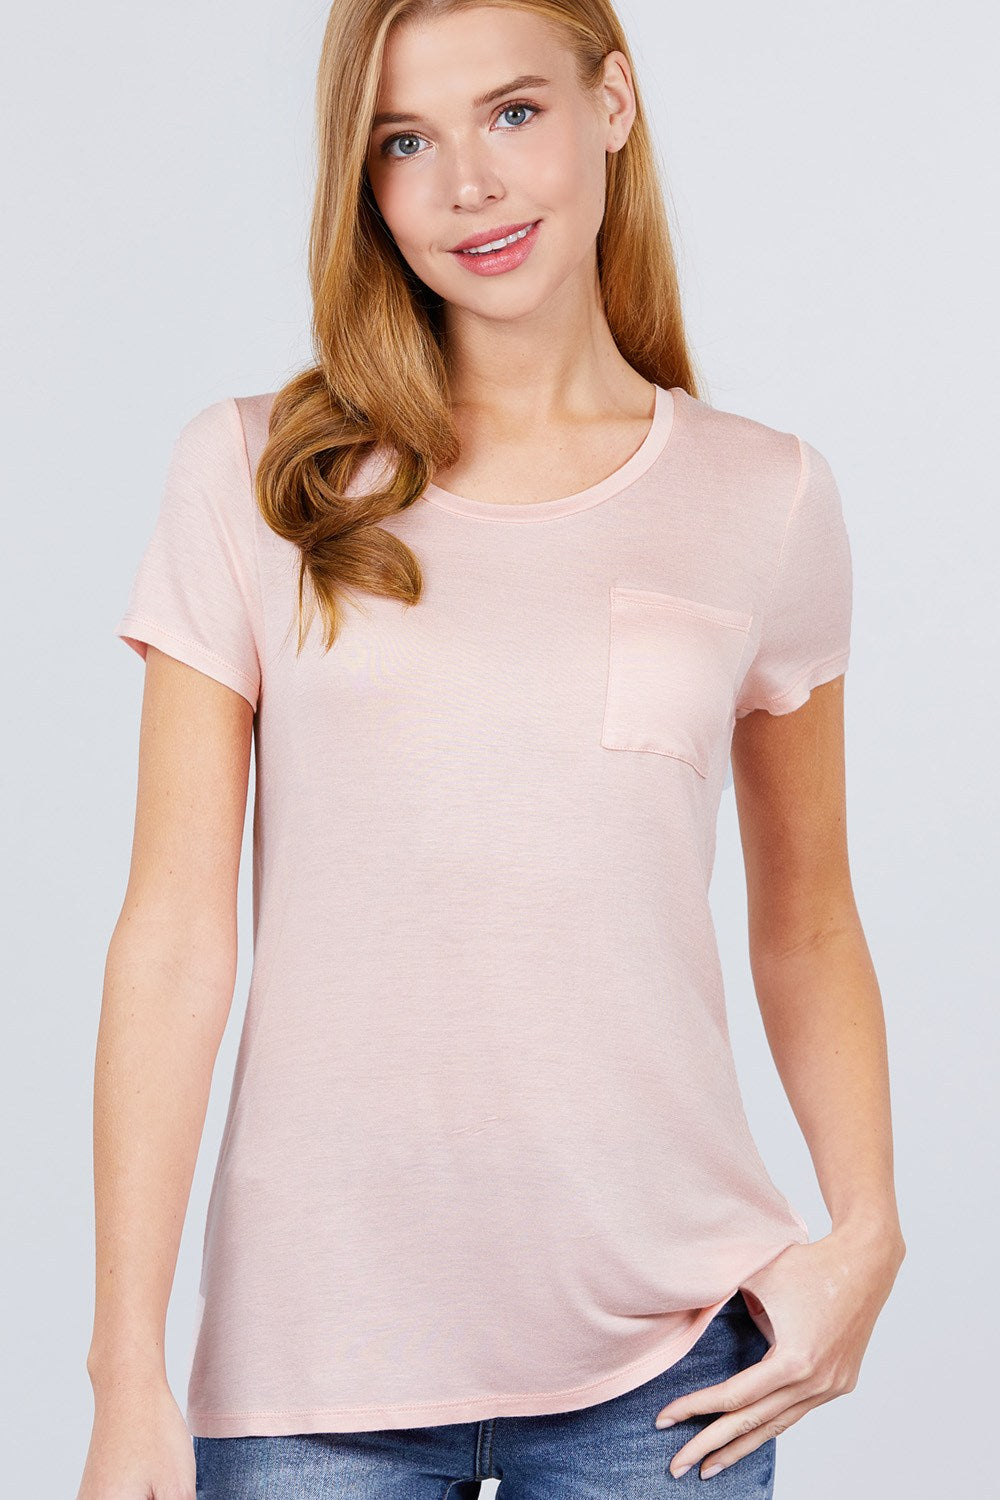 Active Boutique Rose Pink Short Sleeve Scoop Neck Top With Pocket